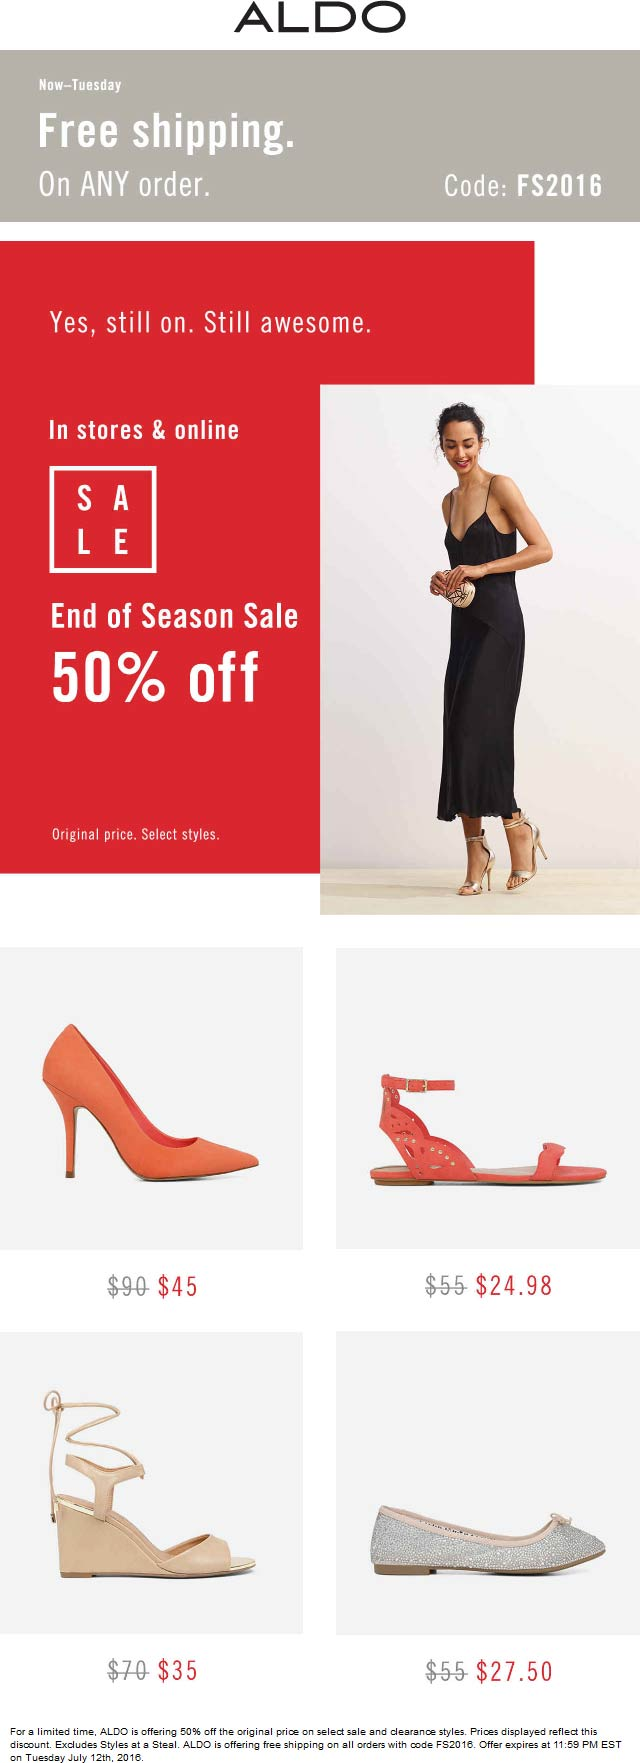 Aldo Coupon February 2020 50% off sale going on at ALDO, or online with free shipping via promo code FS2016